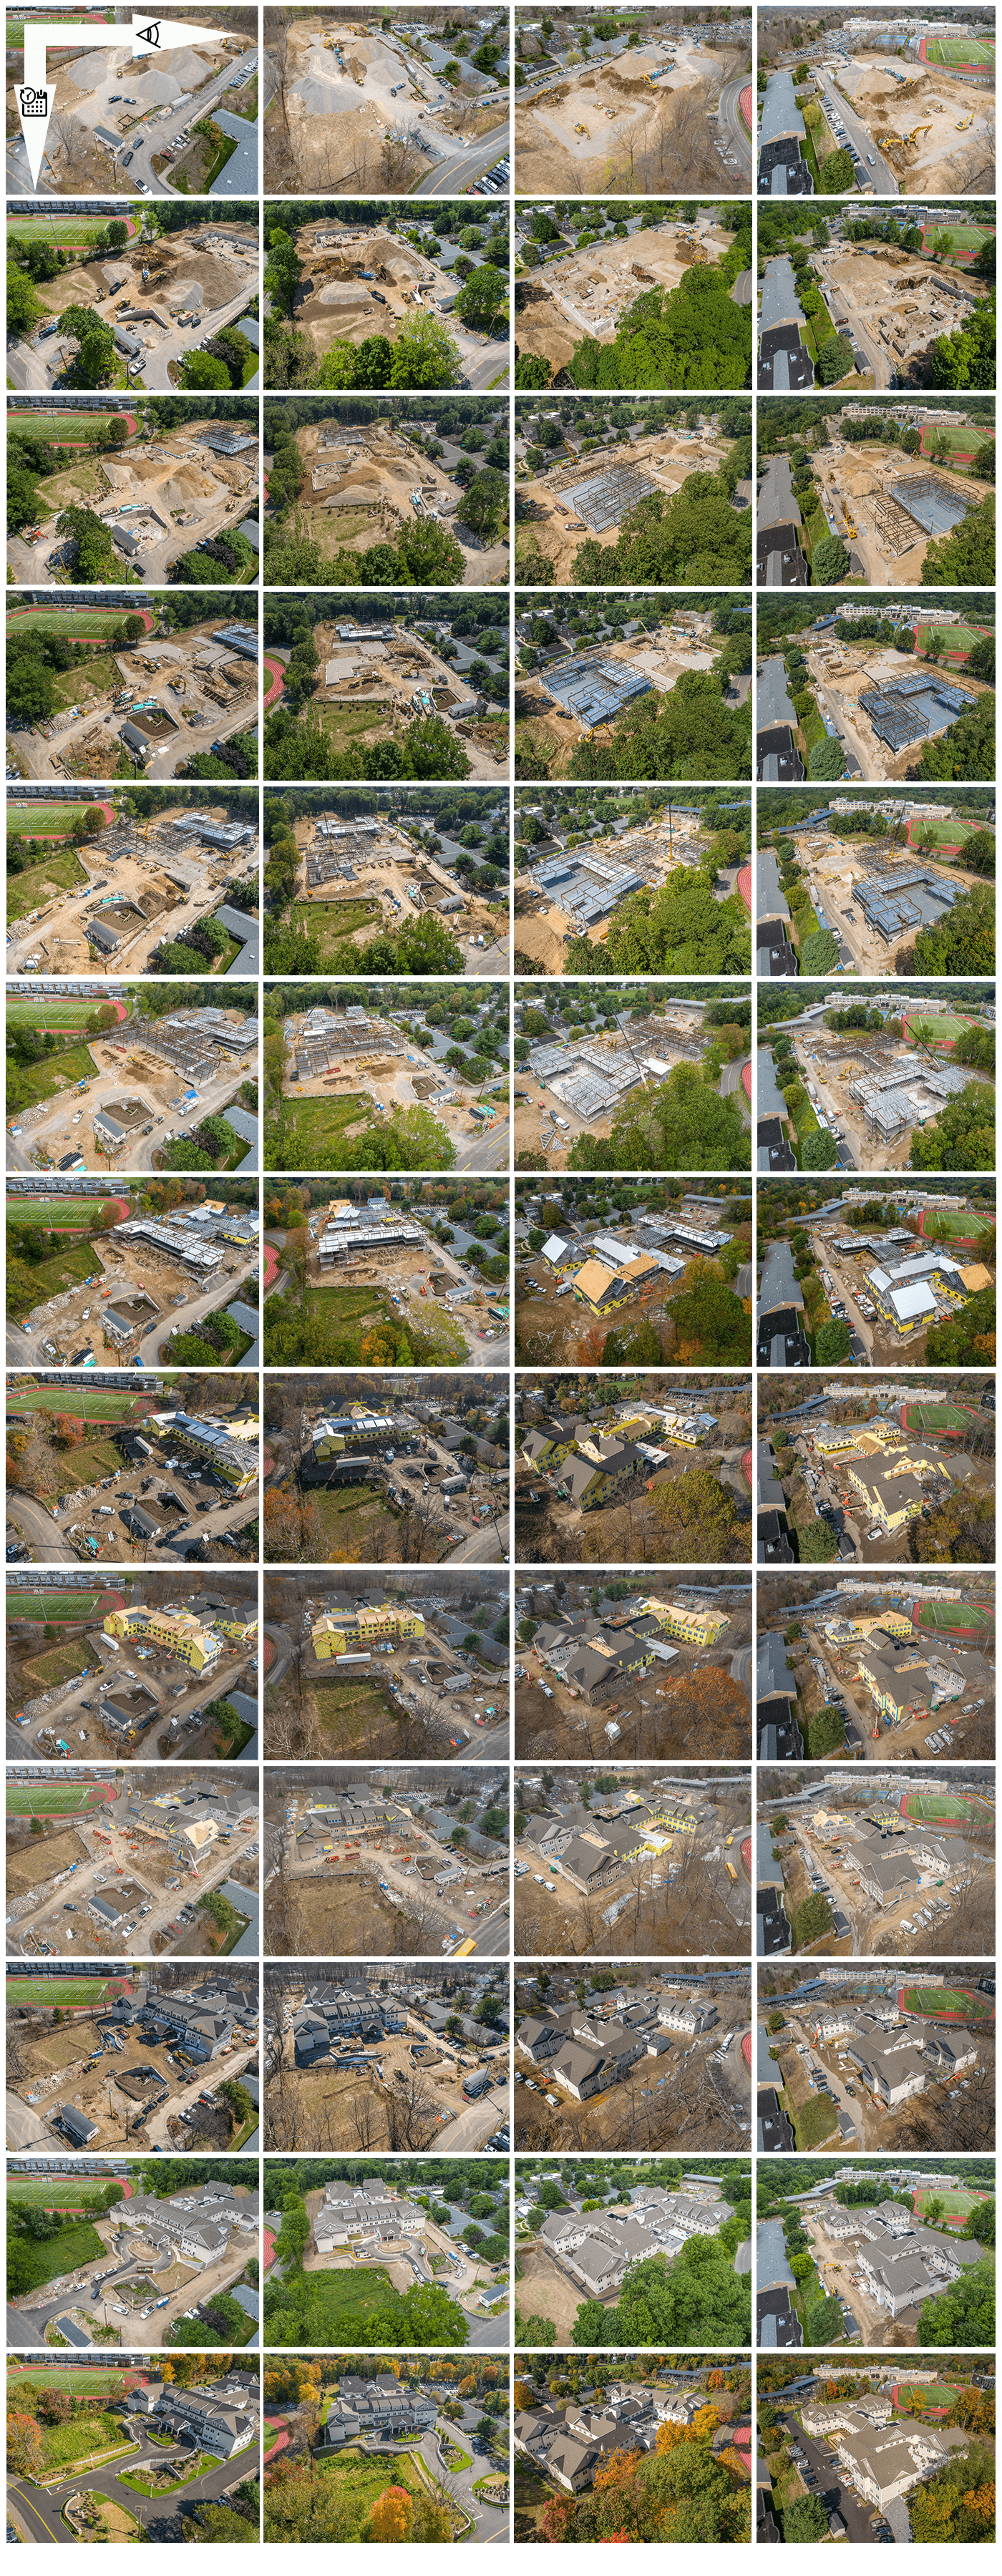 Construction Progress Drone Photography in CT by Photoflight Aerial Media